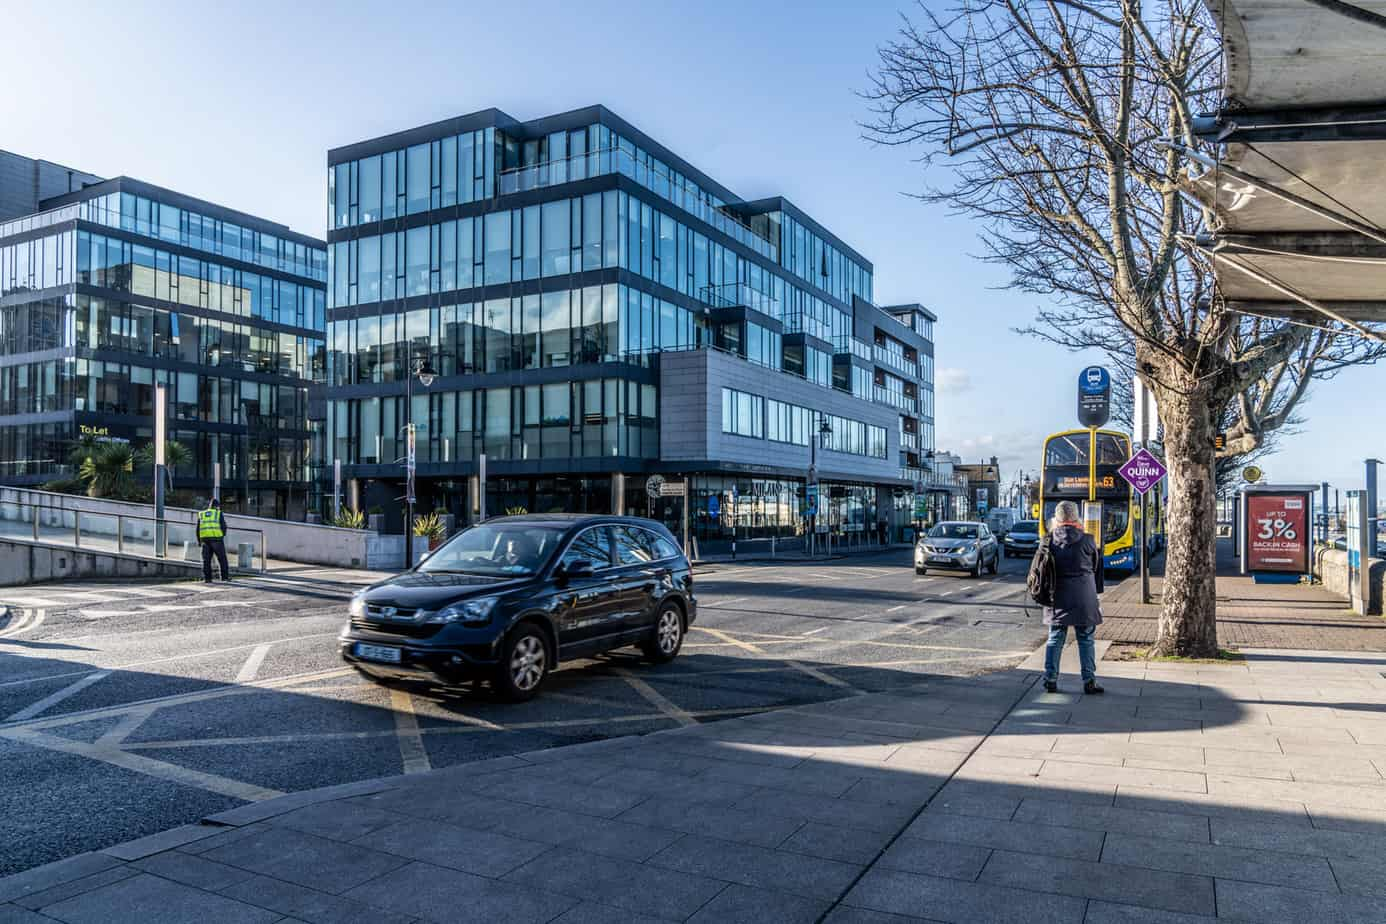 CROFTON-ROAD-AND-THE-NEW-HARBOUR-SQUARE-COMPLEX-DUN-LAOGHAIRE-159993-1